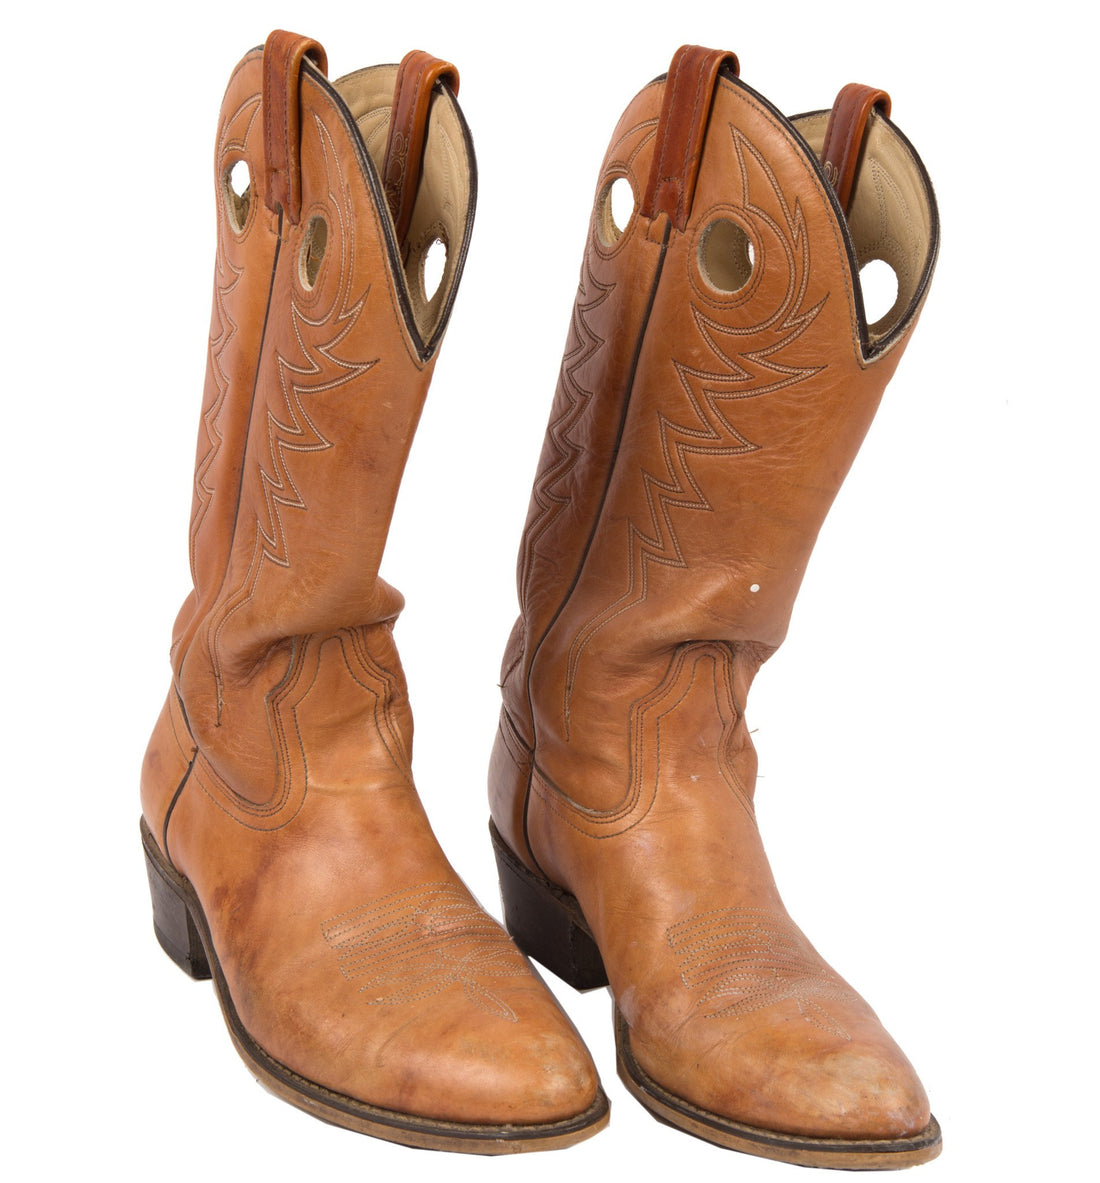 Vintage Brown Leather Cowboy Boots, 9 - Vintage - Iron and Resin